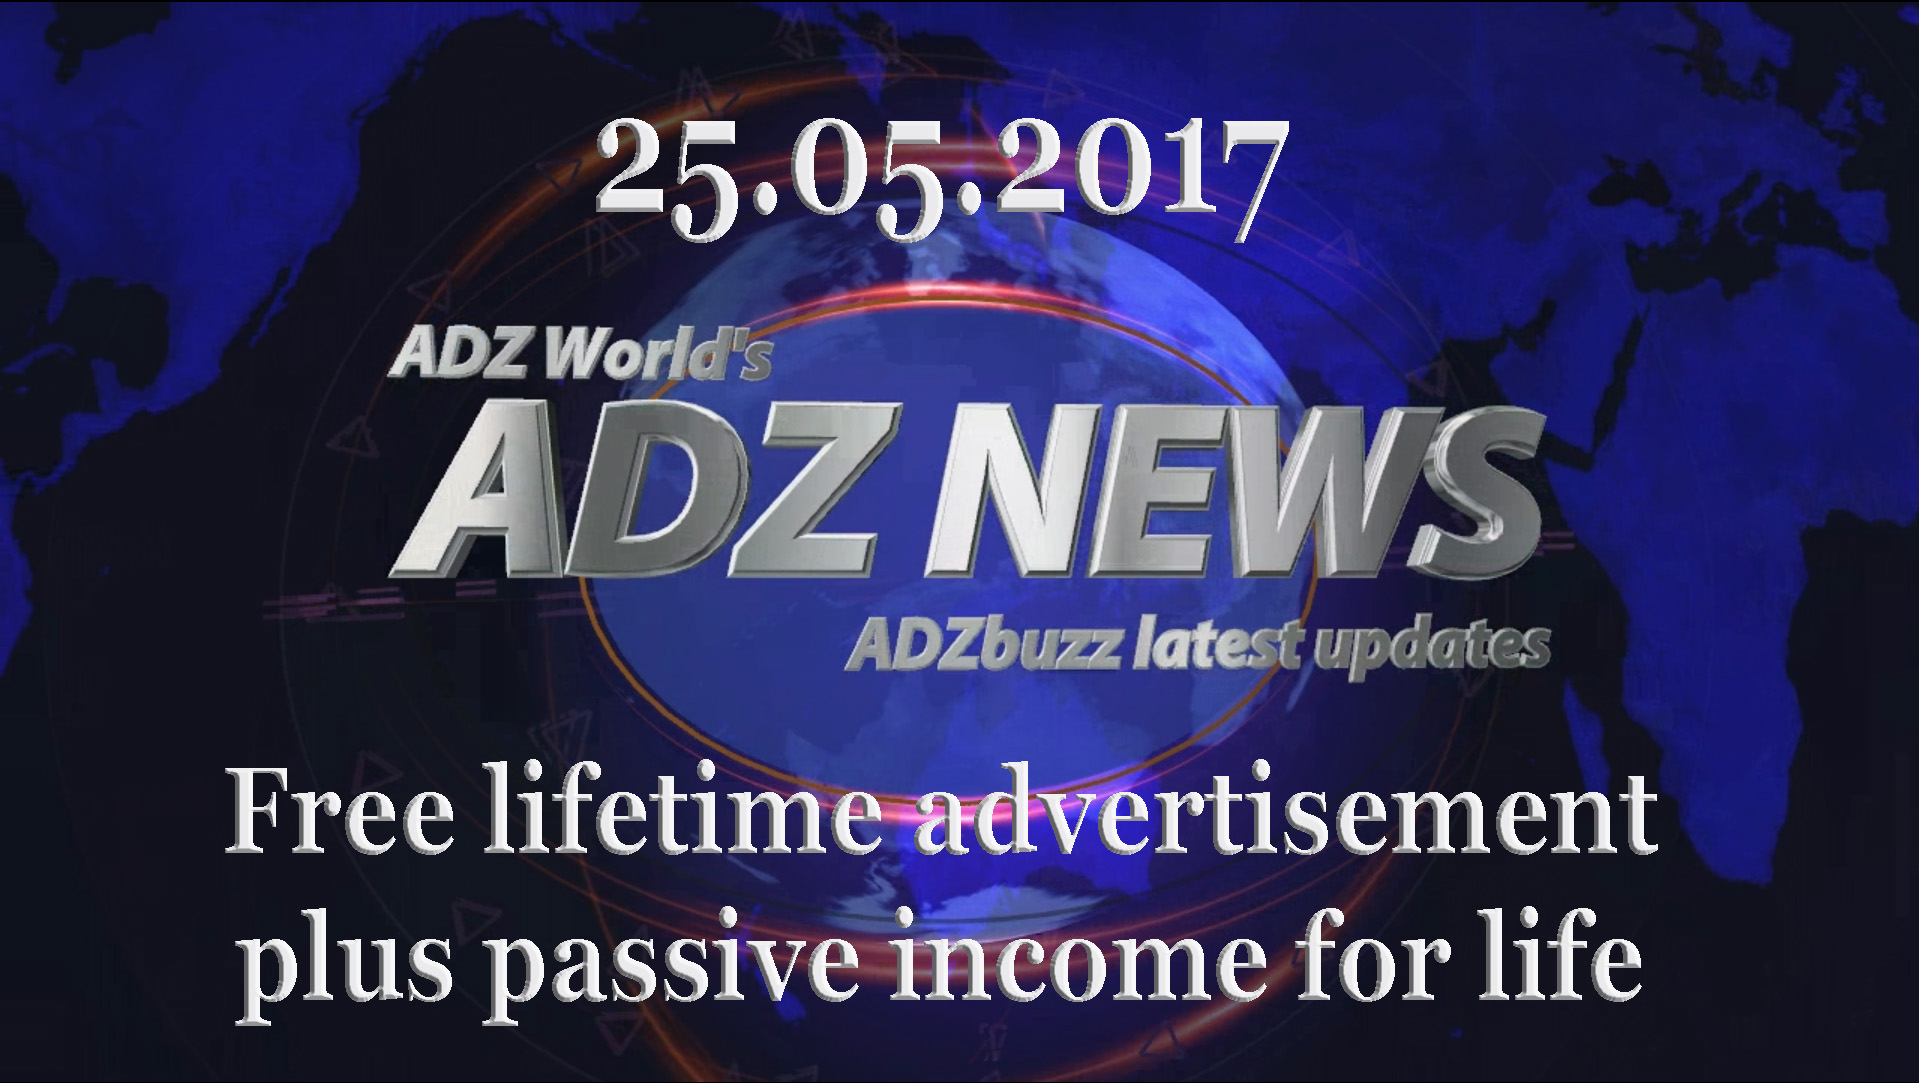 ADZ News 25.05.2017 – Free lifetime advertisement and passive income for life